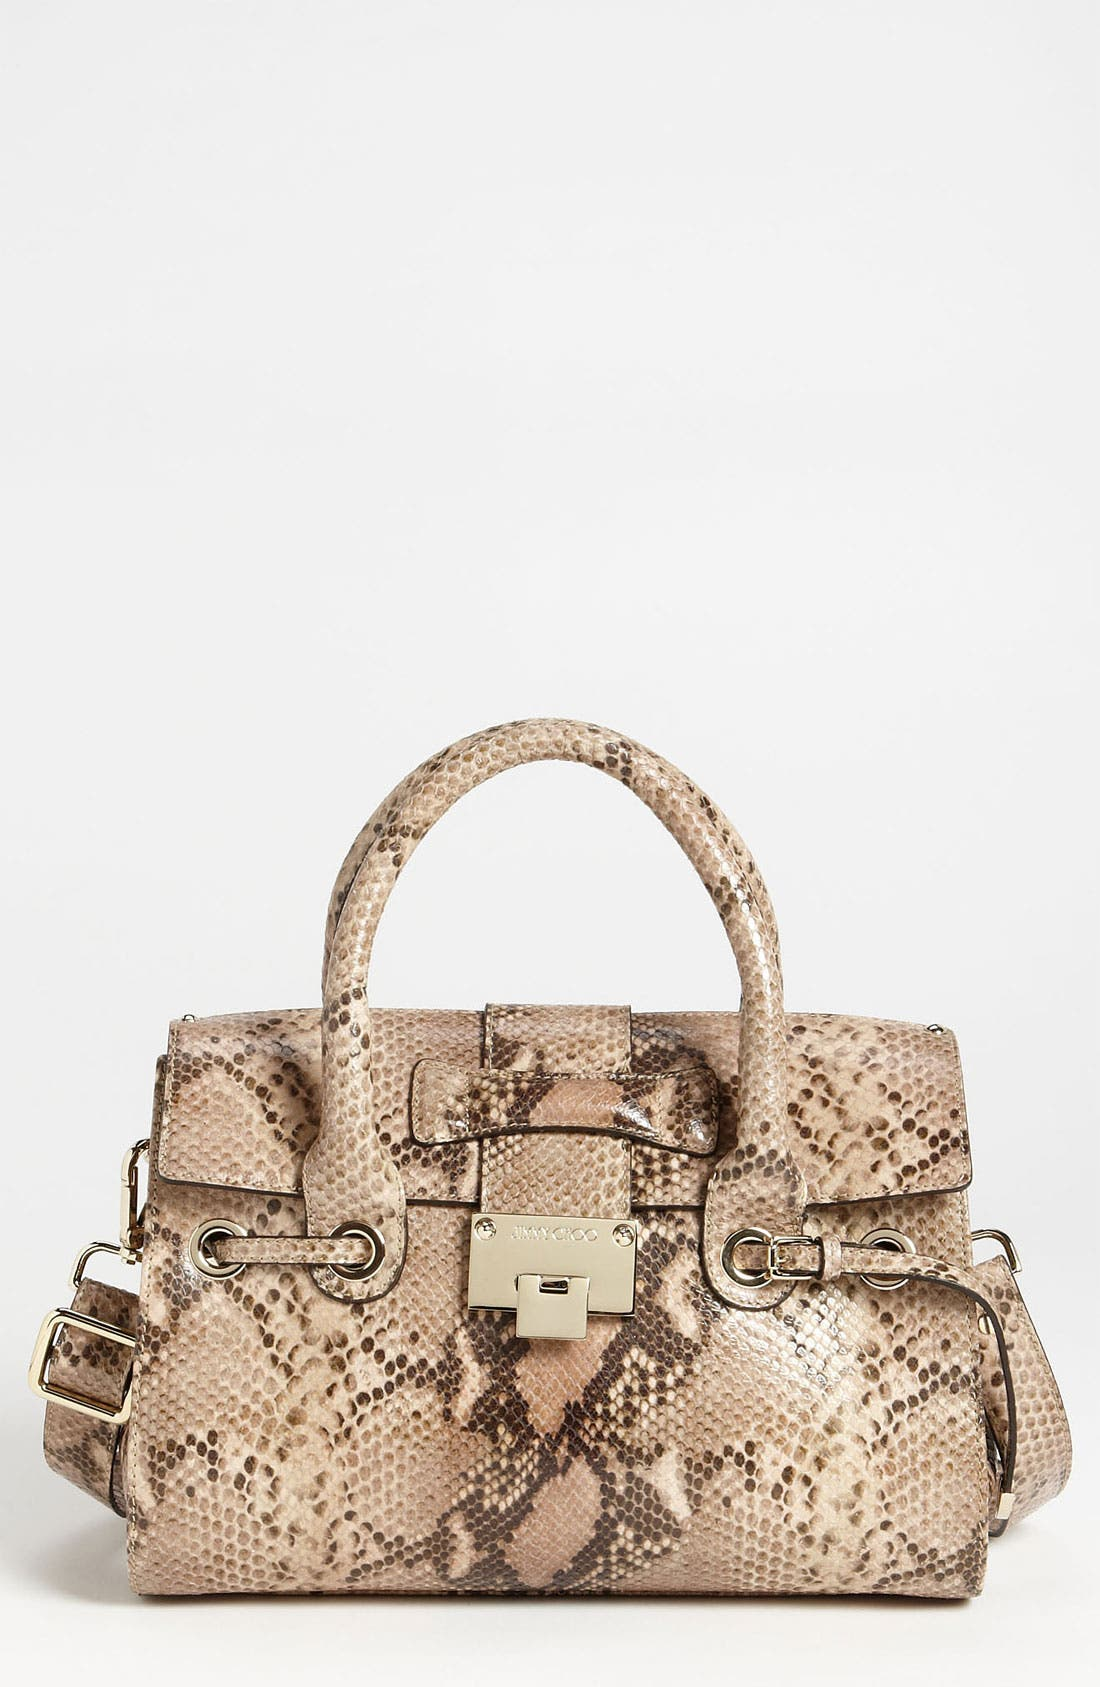 Alternate Image 1 Selected - Jimmy Choo 'Rosalie' Snake Embossed Leather Satchel